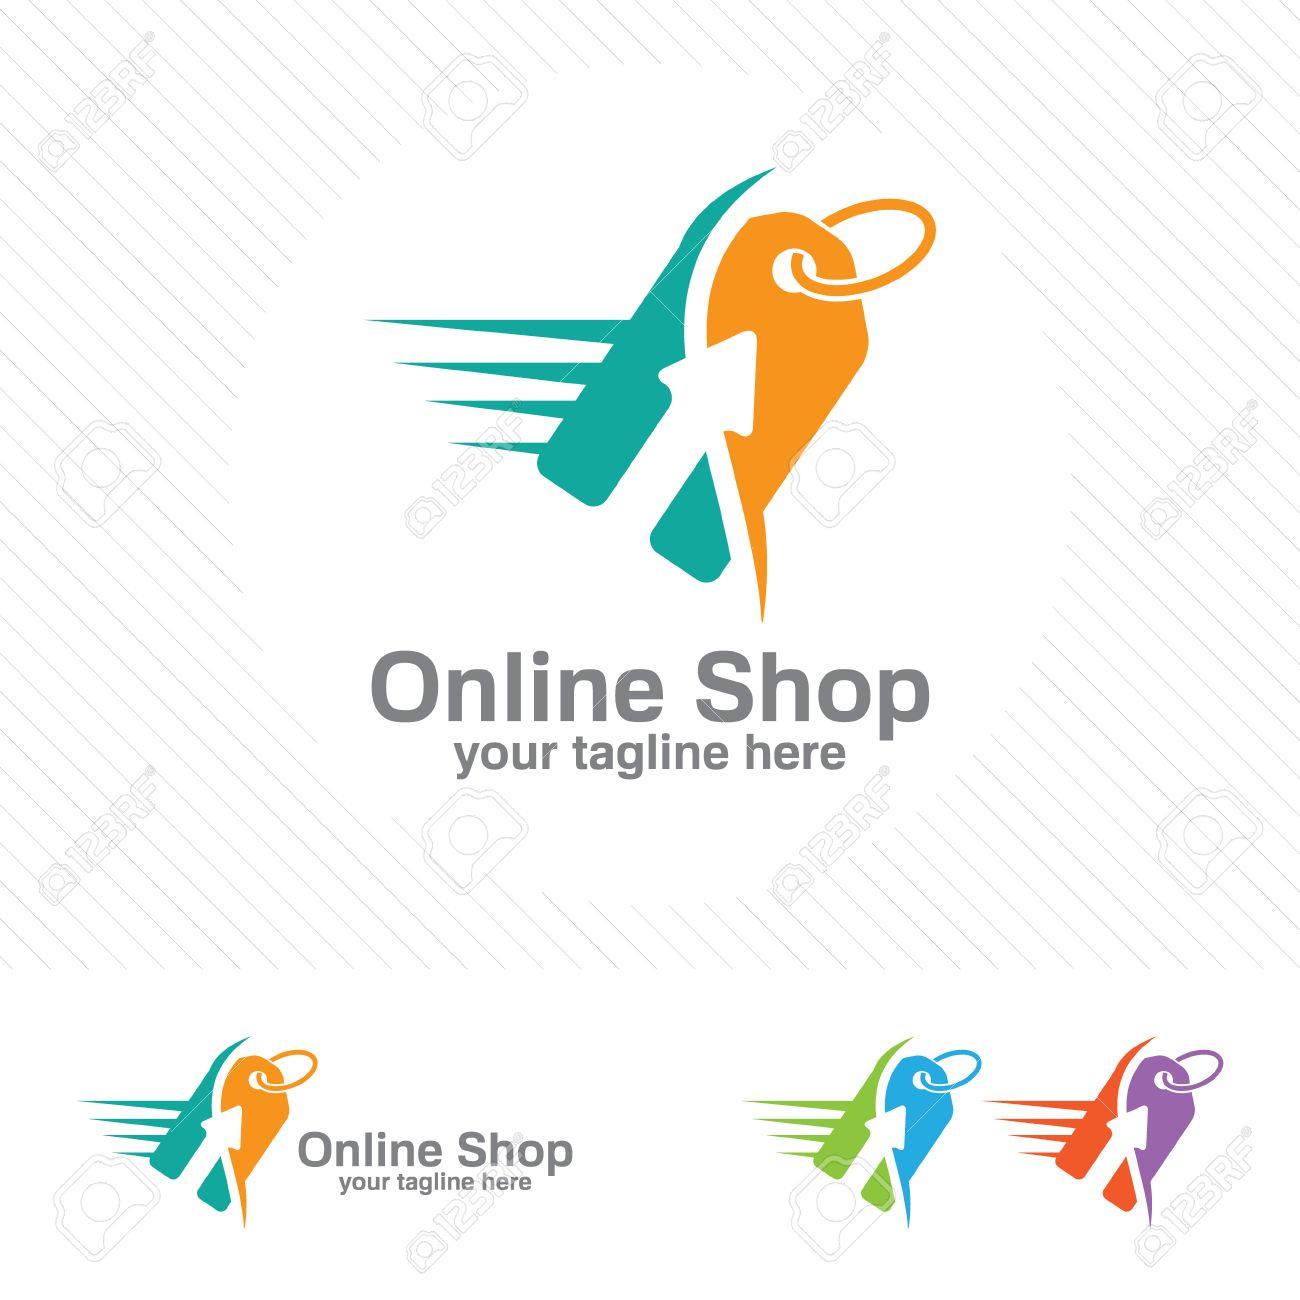 Online Store Logo Design Vector Shopping Cart And Price Tag Logo